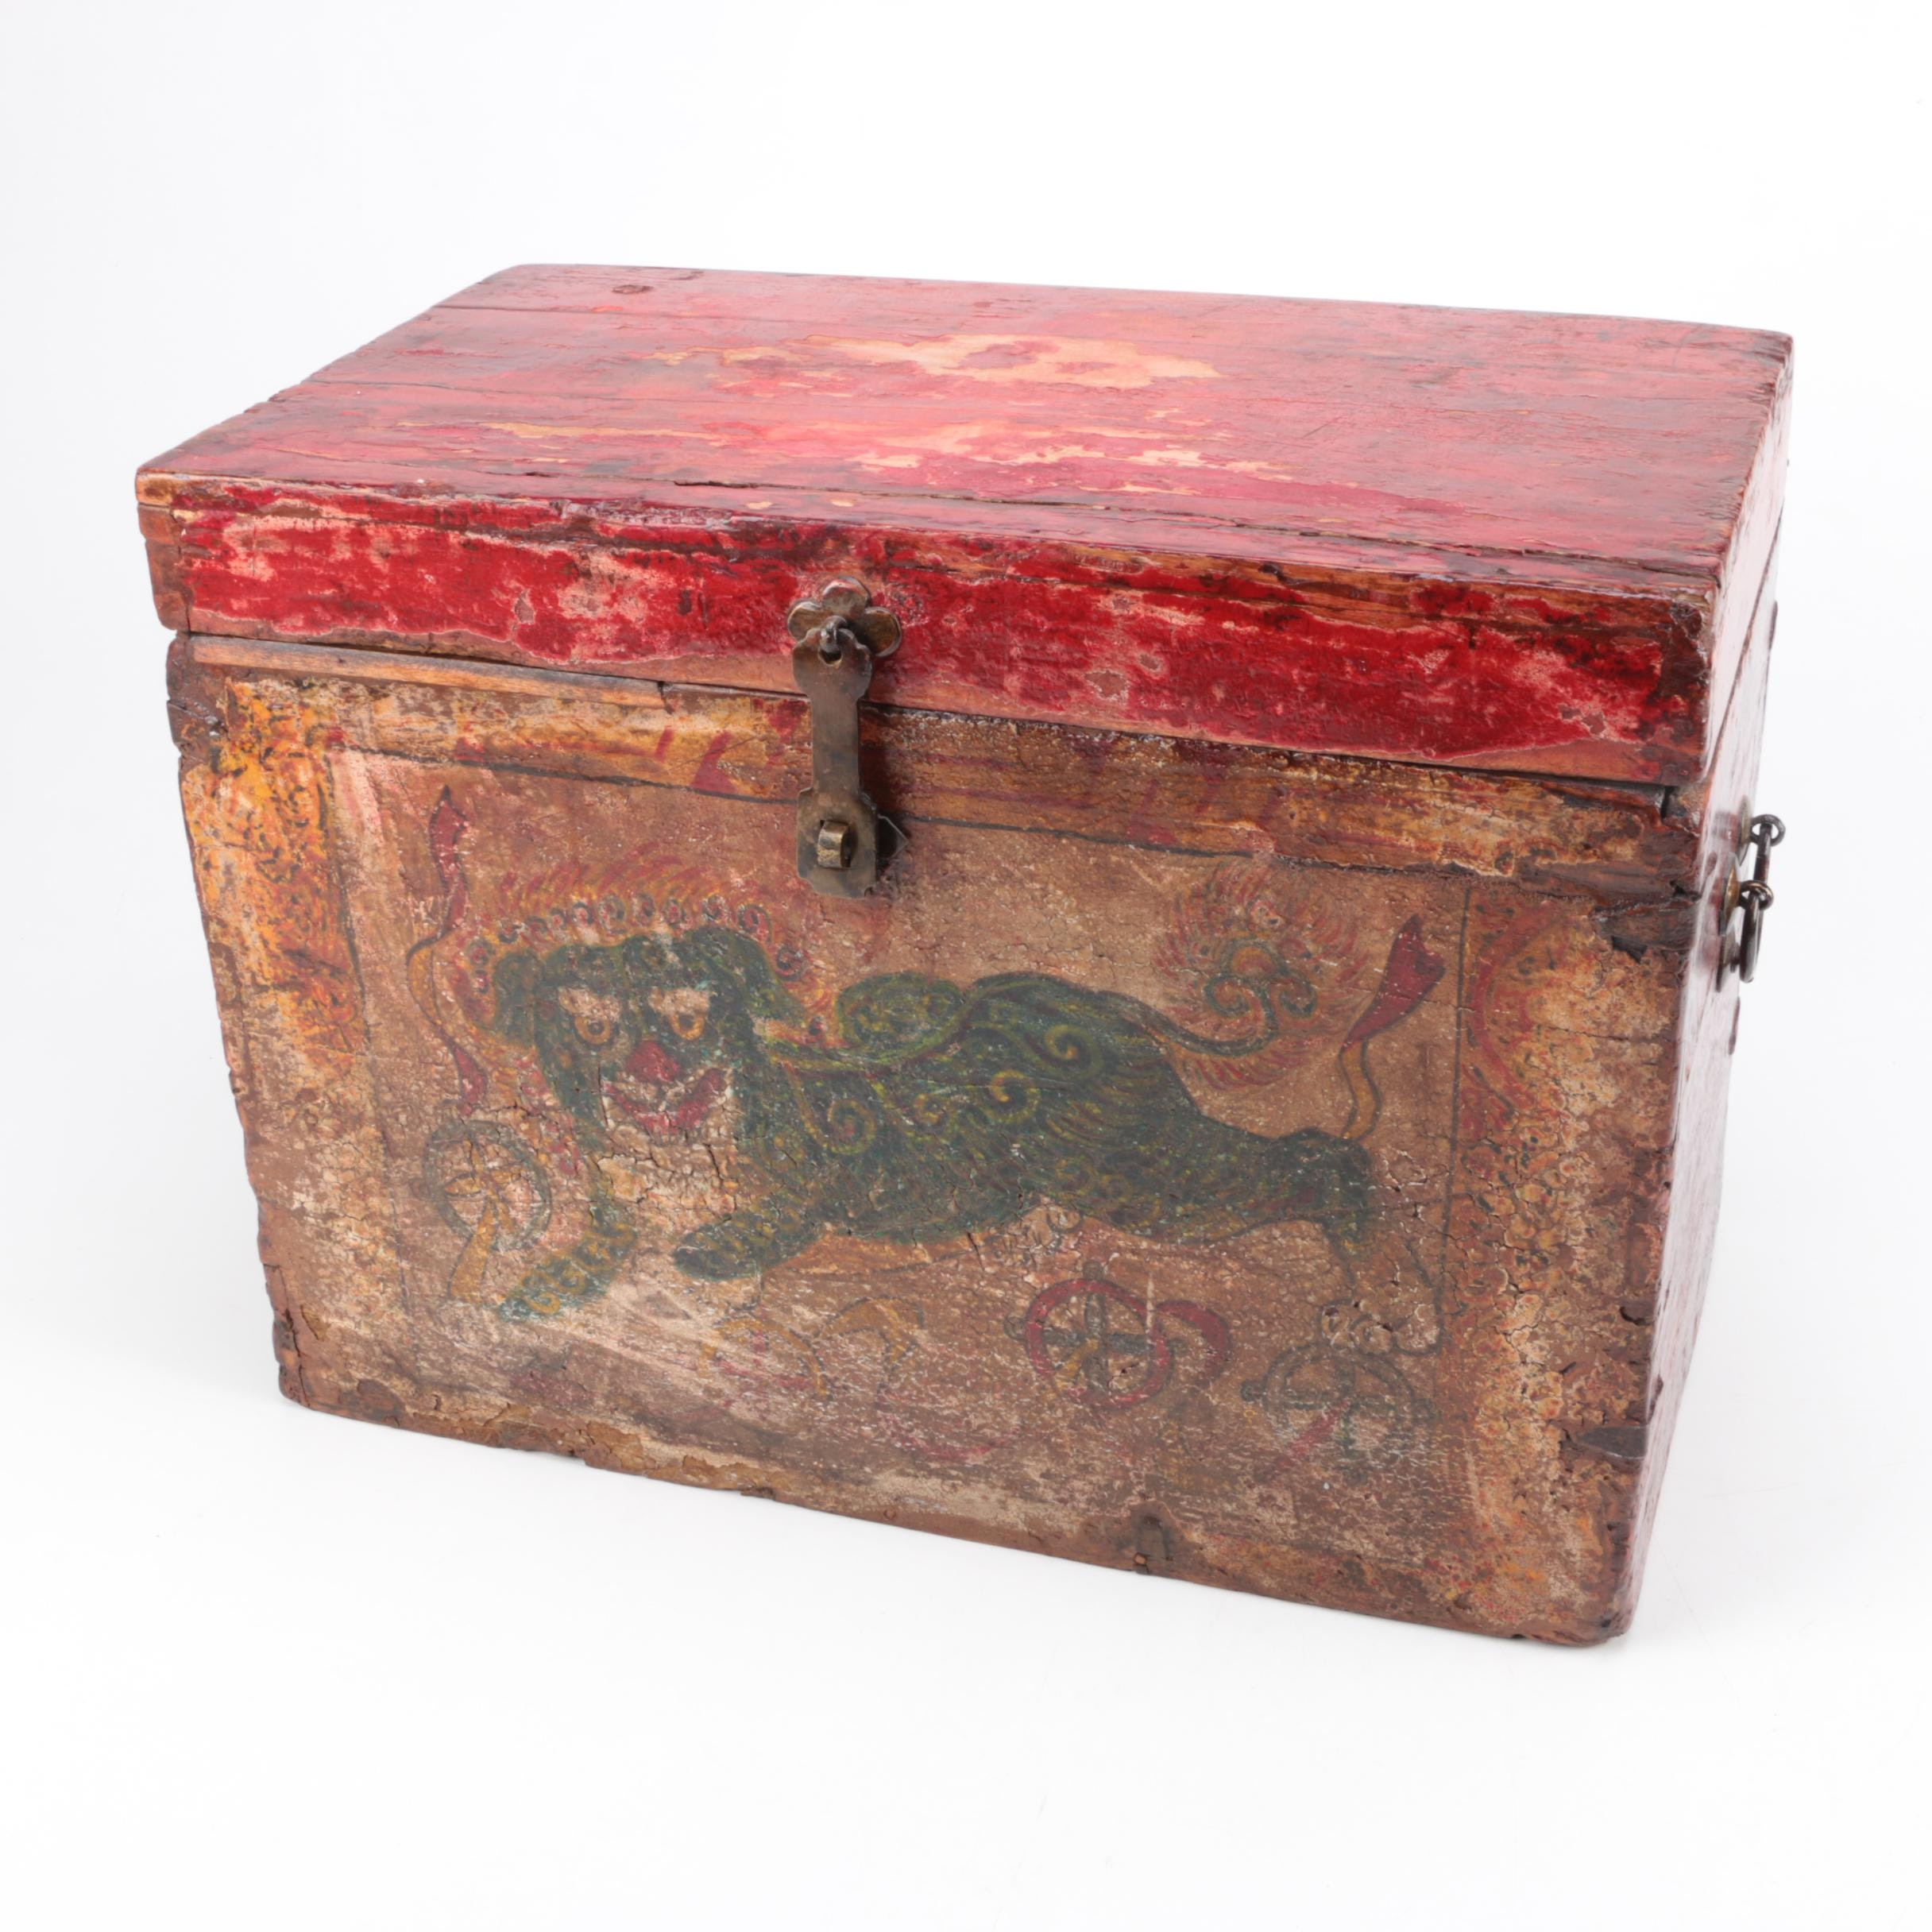 Painted Wooden Trunk